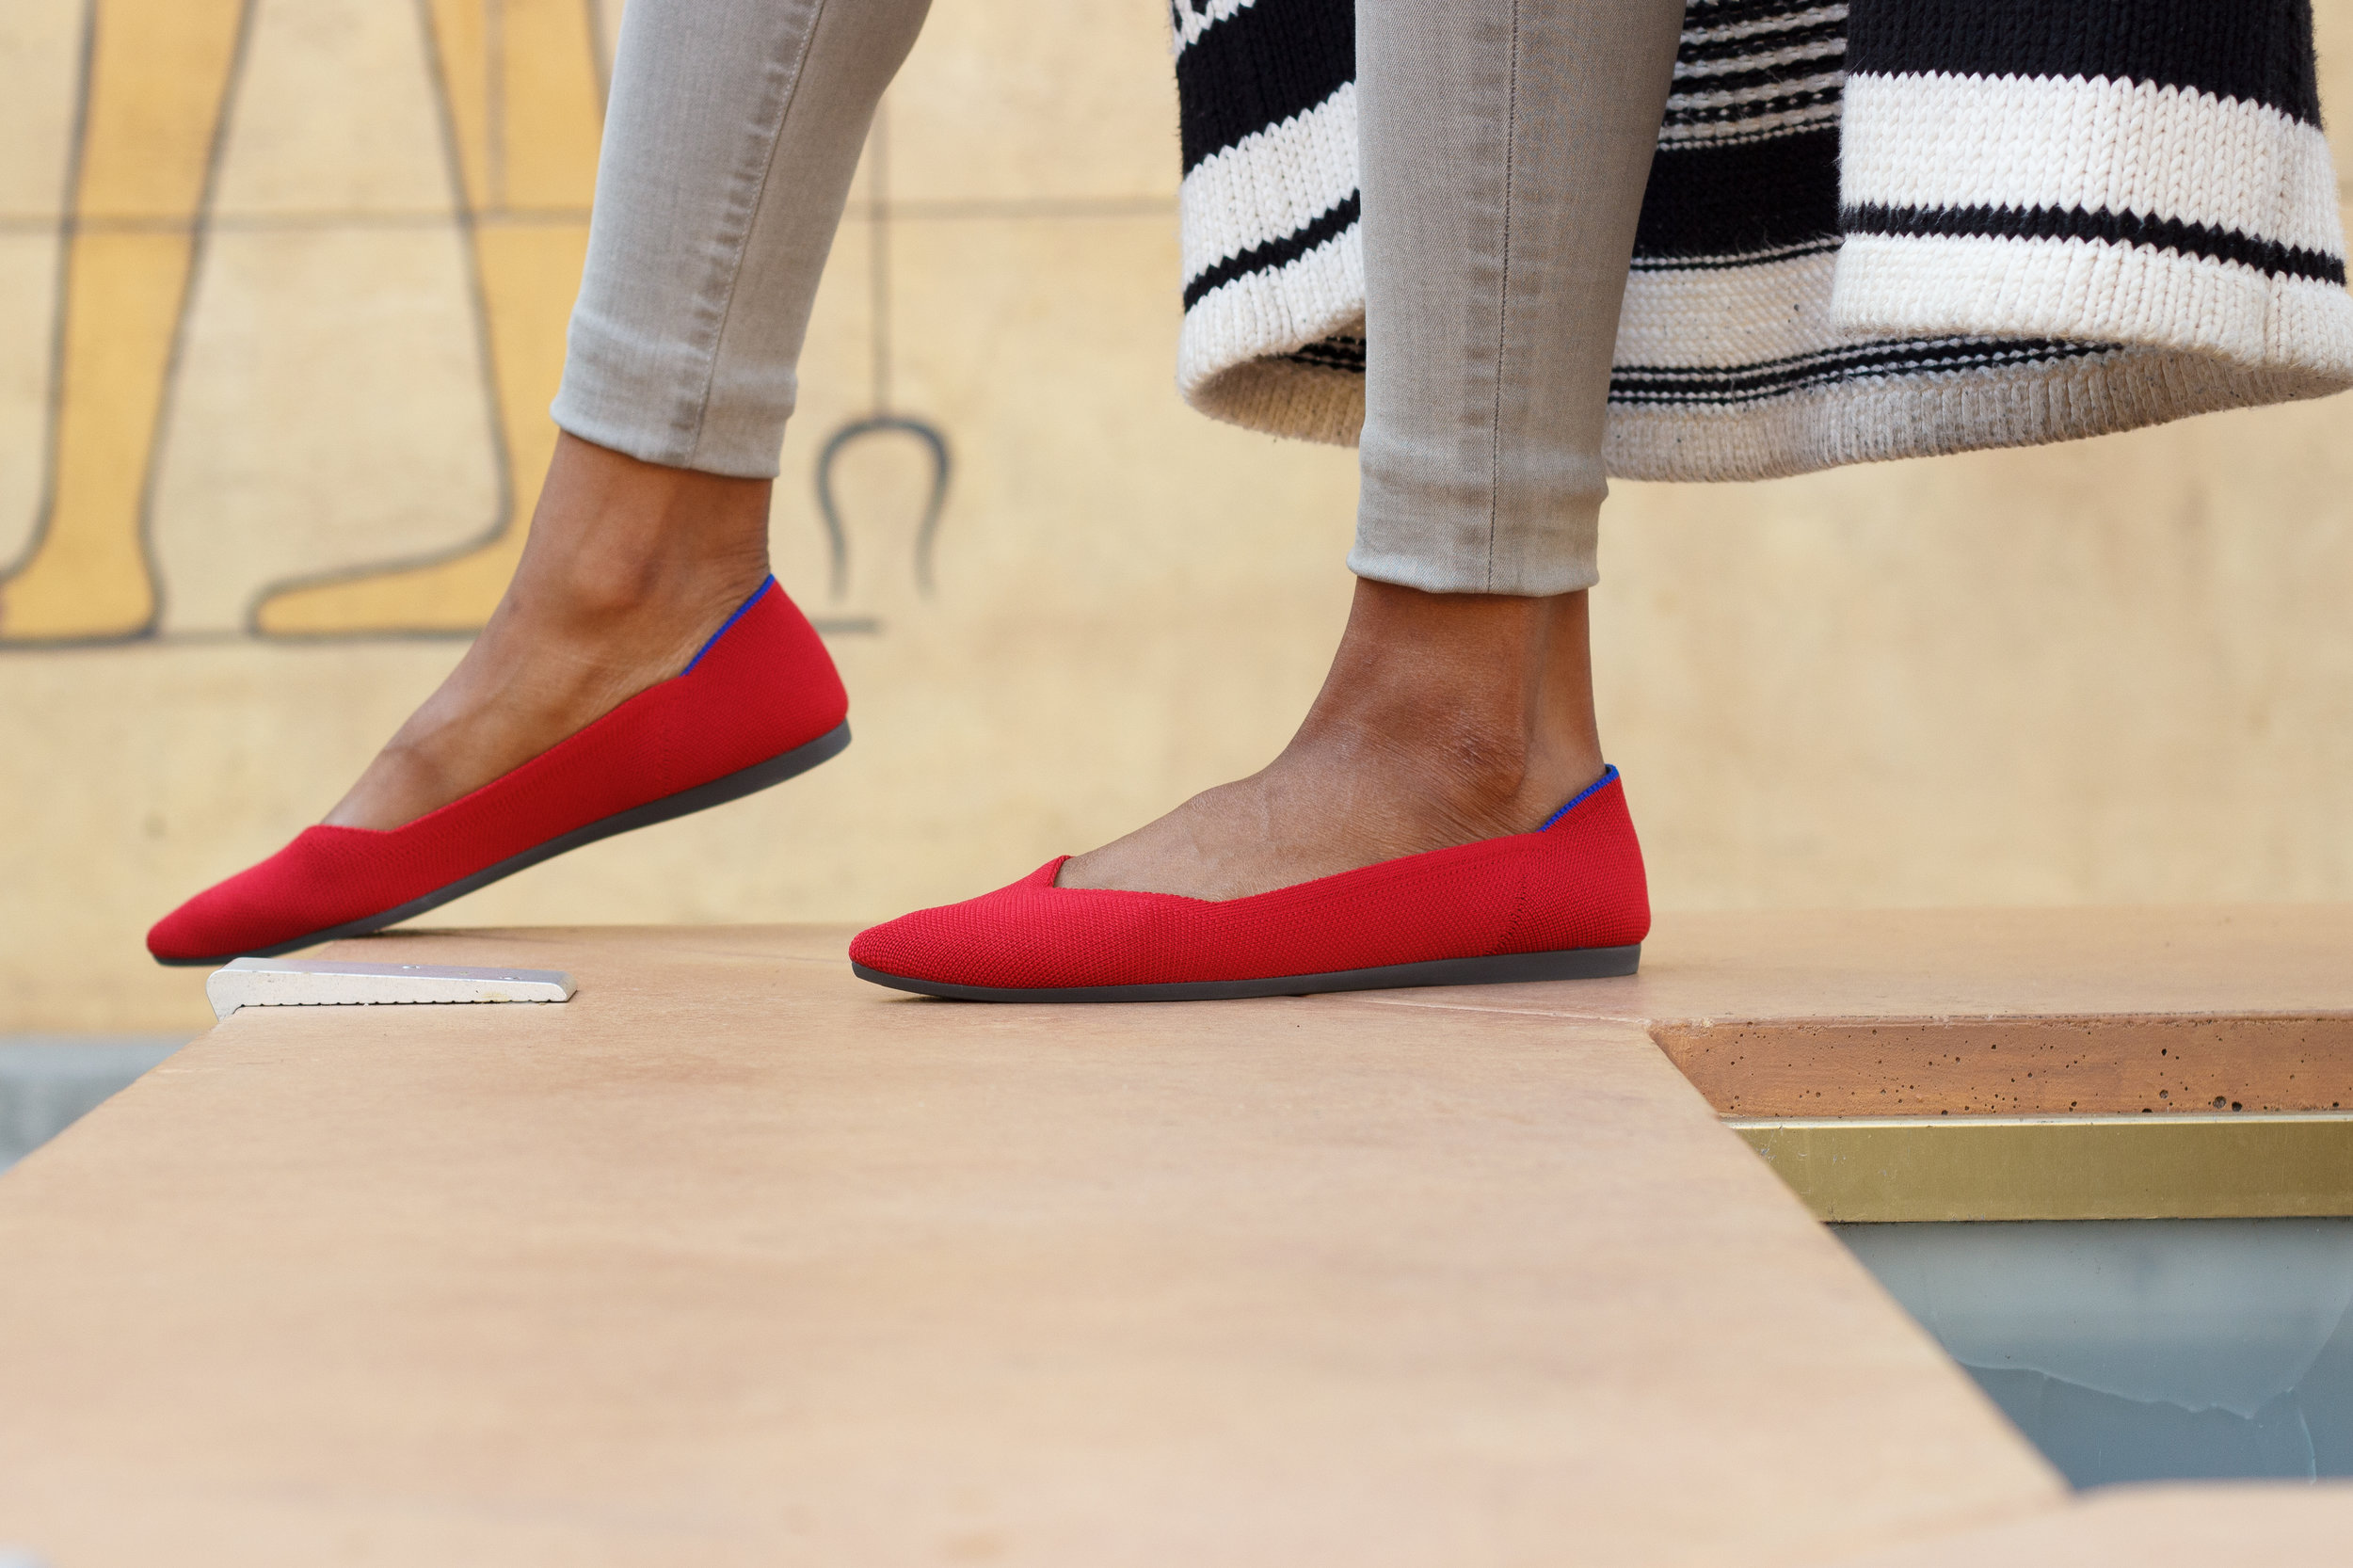 The Red Shoes_5.jpg